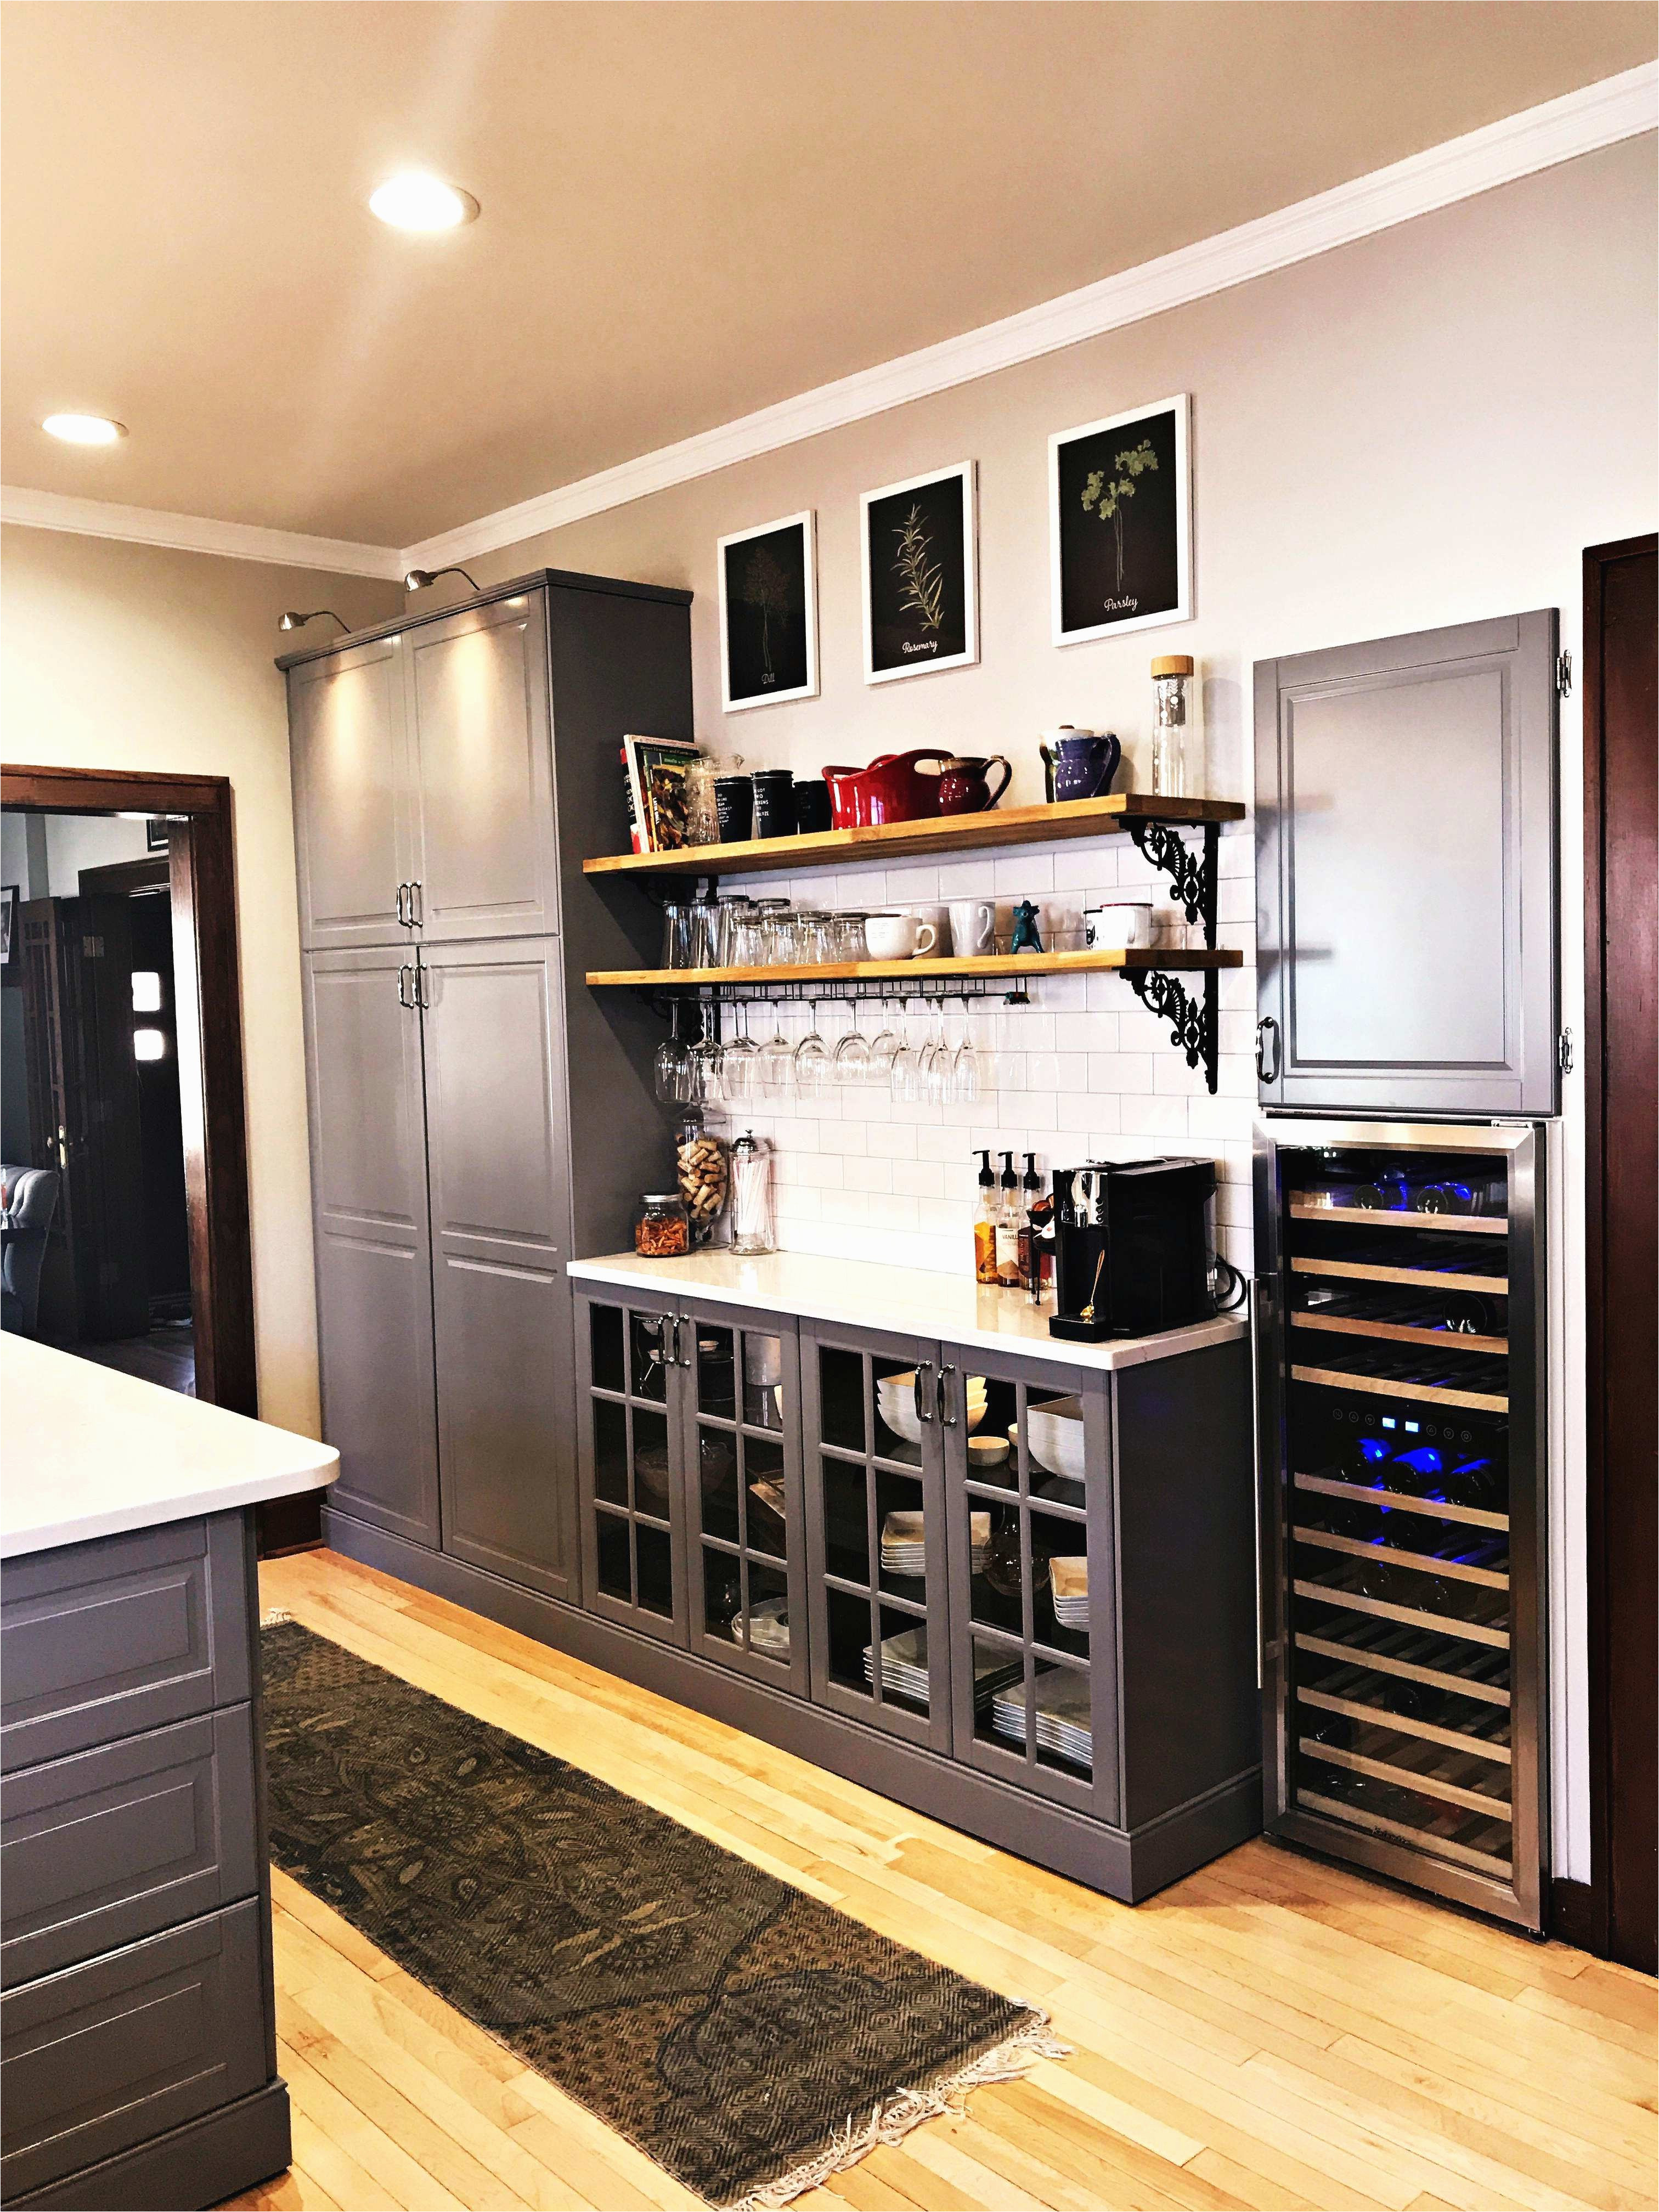 big chill refrigerator craigslist i love these appliances not just for the look but for the quality